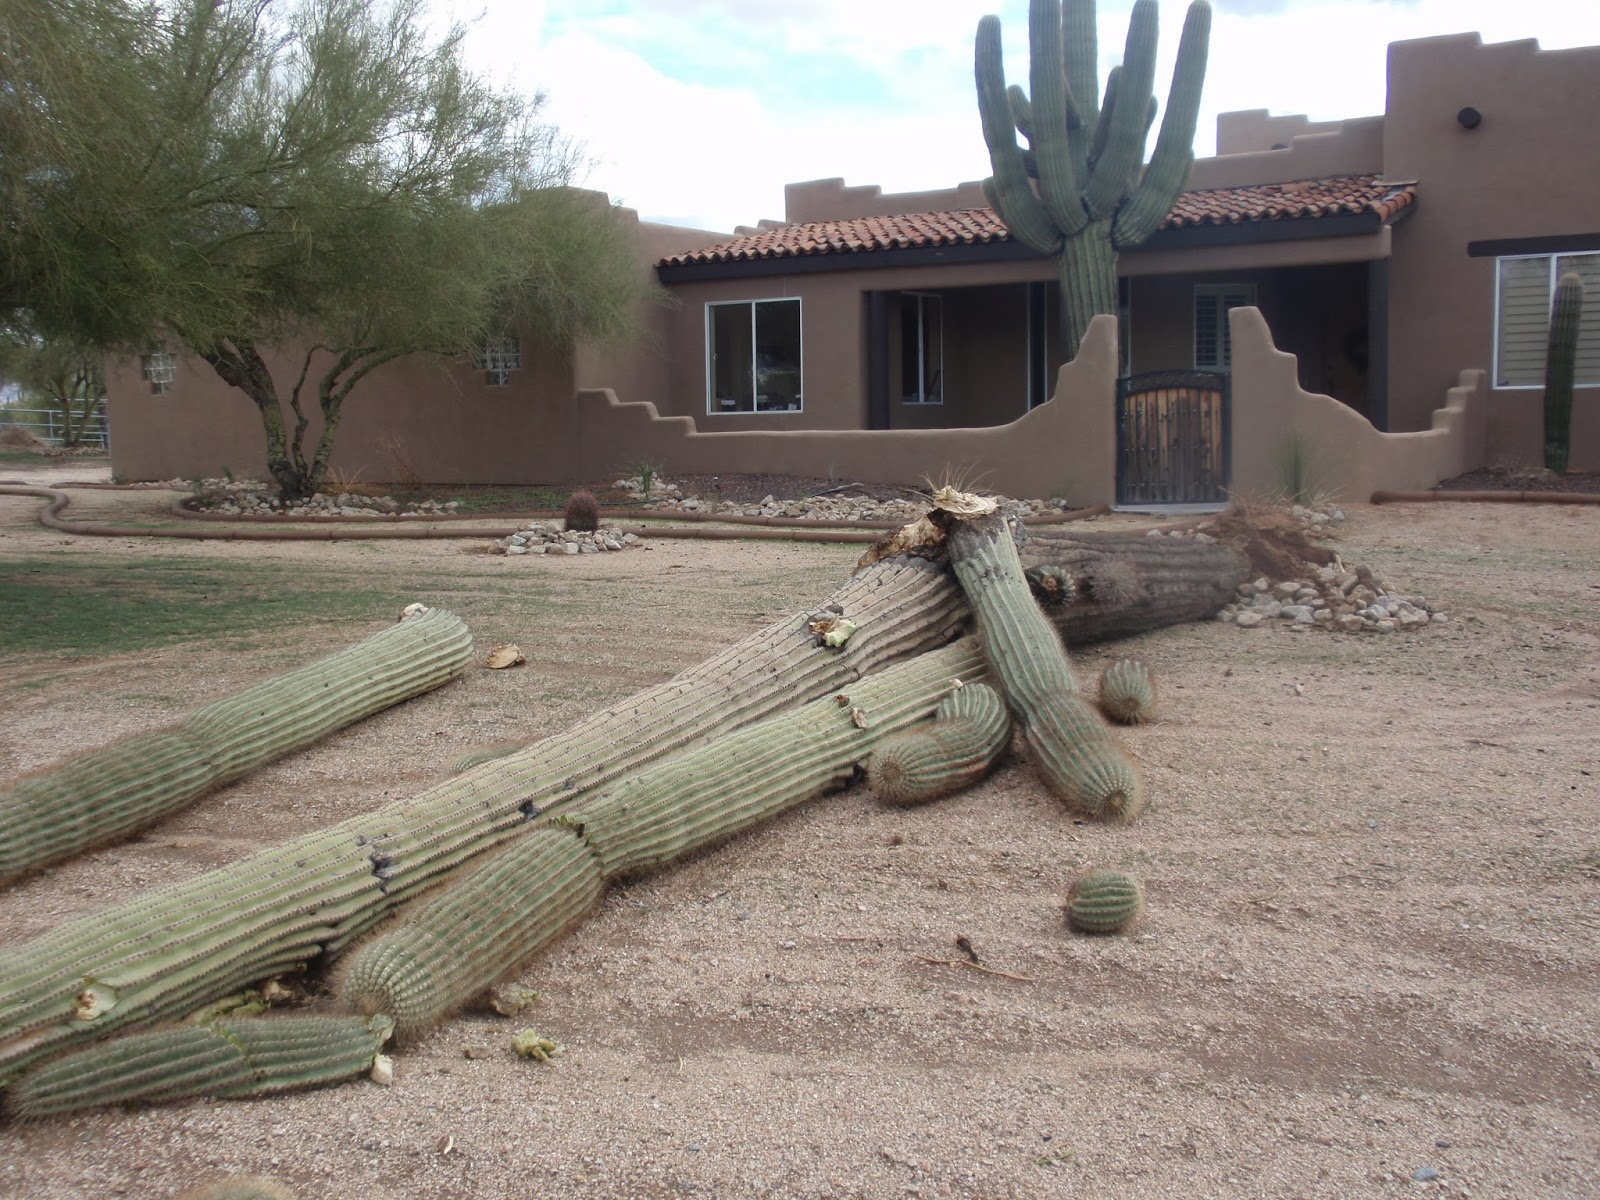 Harming or moving a saguaro is illegal in the state of Arizona, unless a special permit is obtained. One exception: if a private home sits on less than 10 acres and a cactus falls during a storm, then the homeowner is permitted to remove the remains. (Photo by Kristy McCaffrey, author of Into the Land of Shadows.)